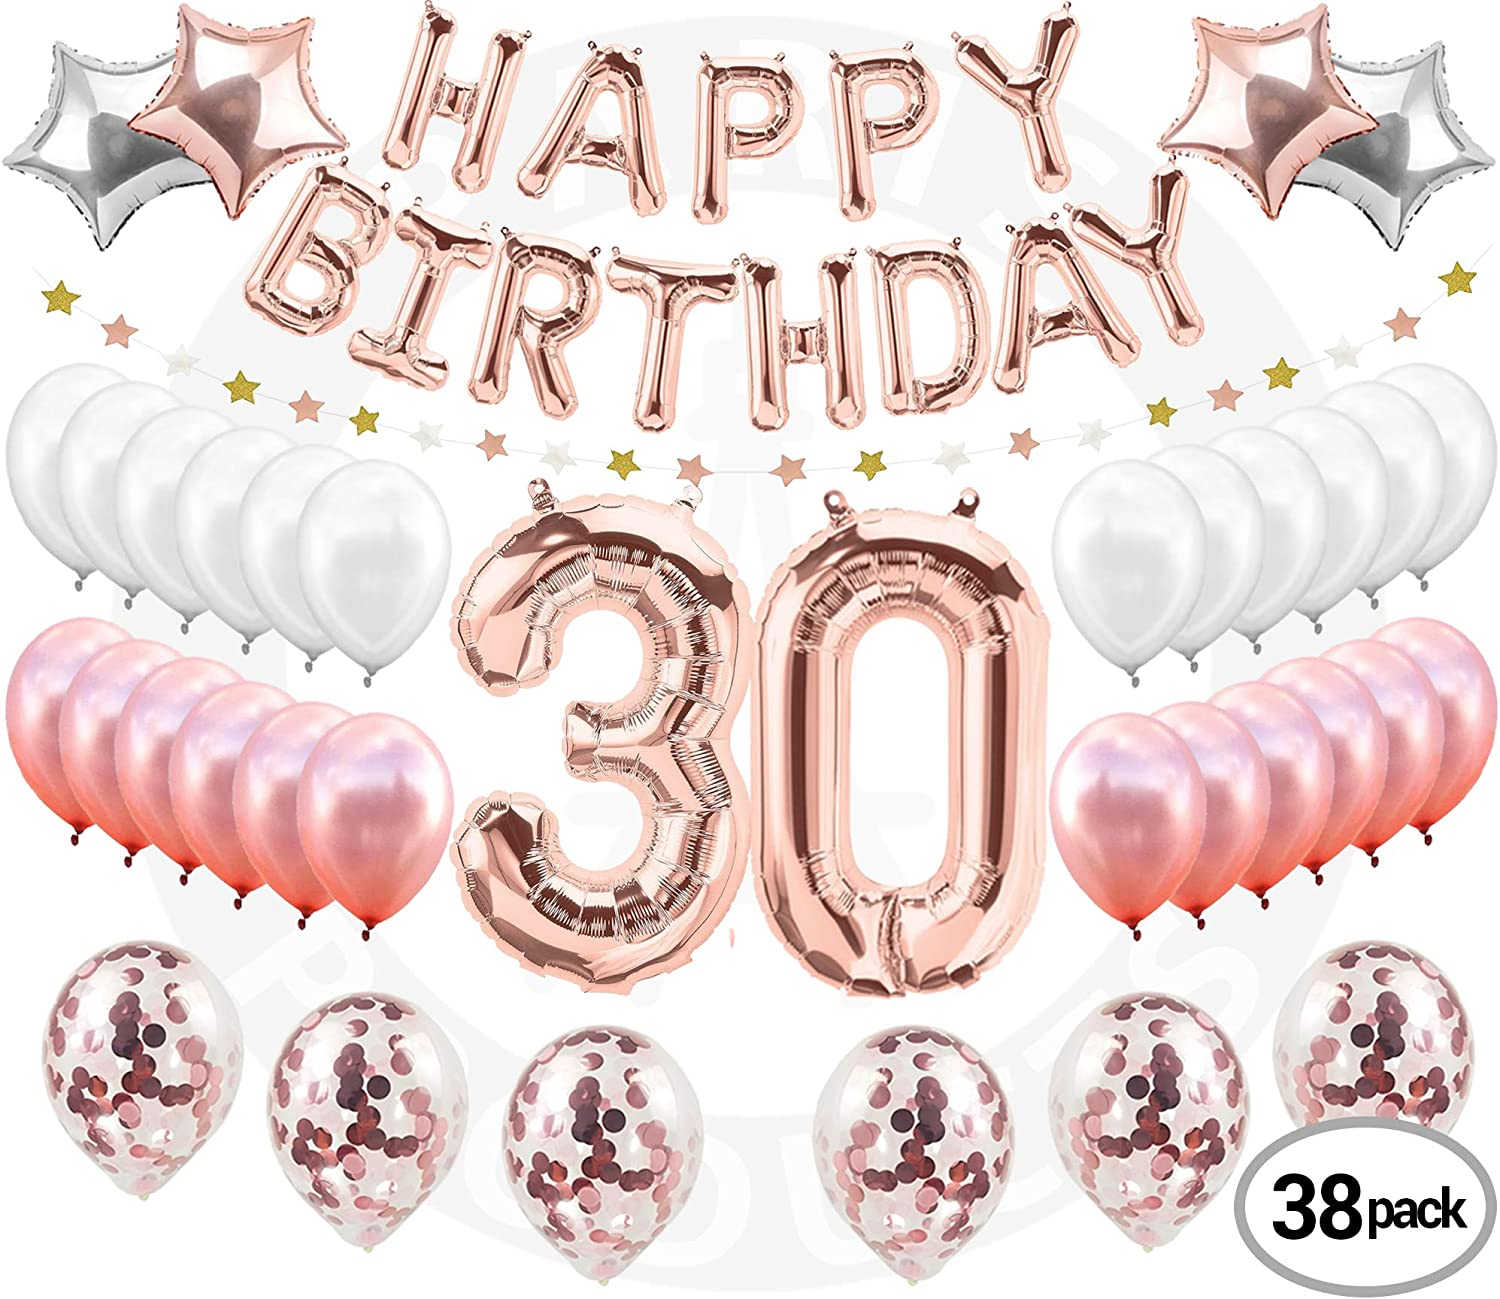 30th Birthday Decorations Pink Gold 38 Pieces Great For